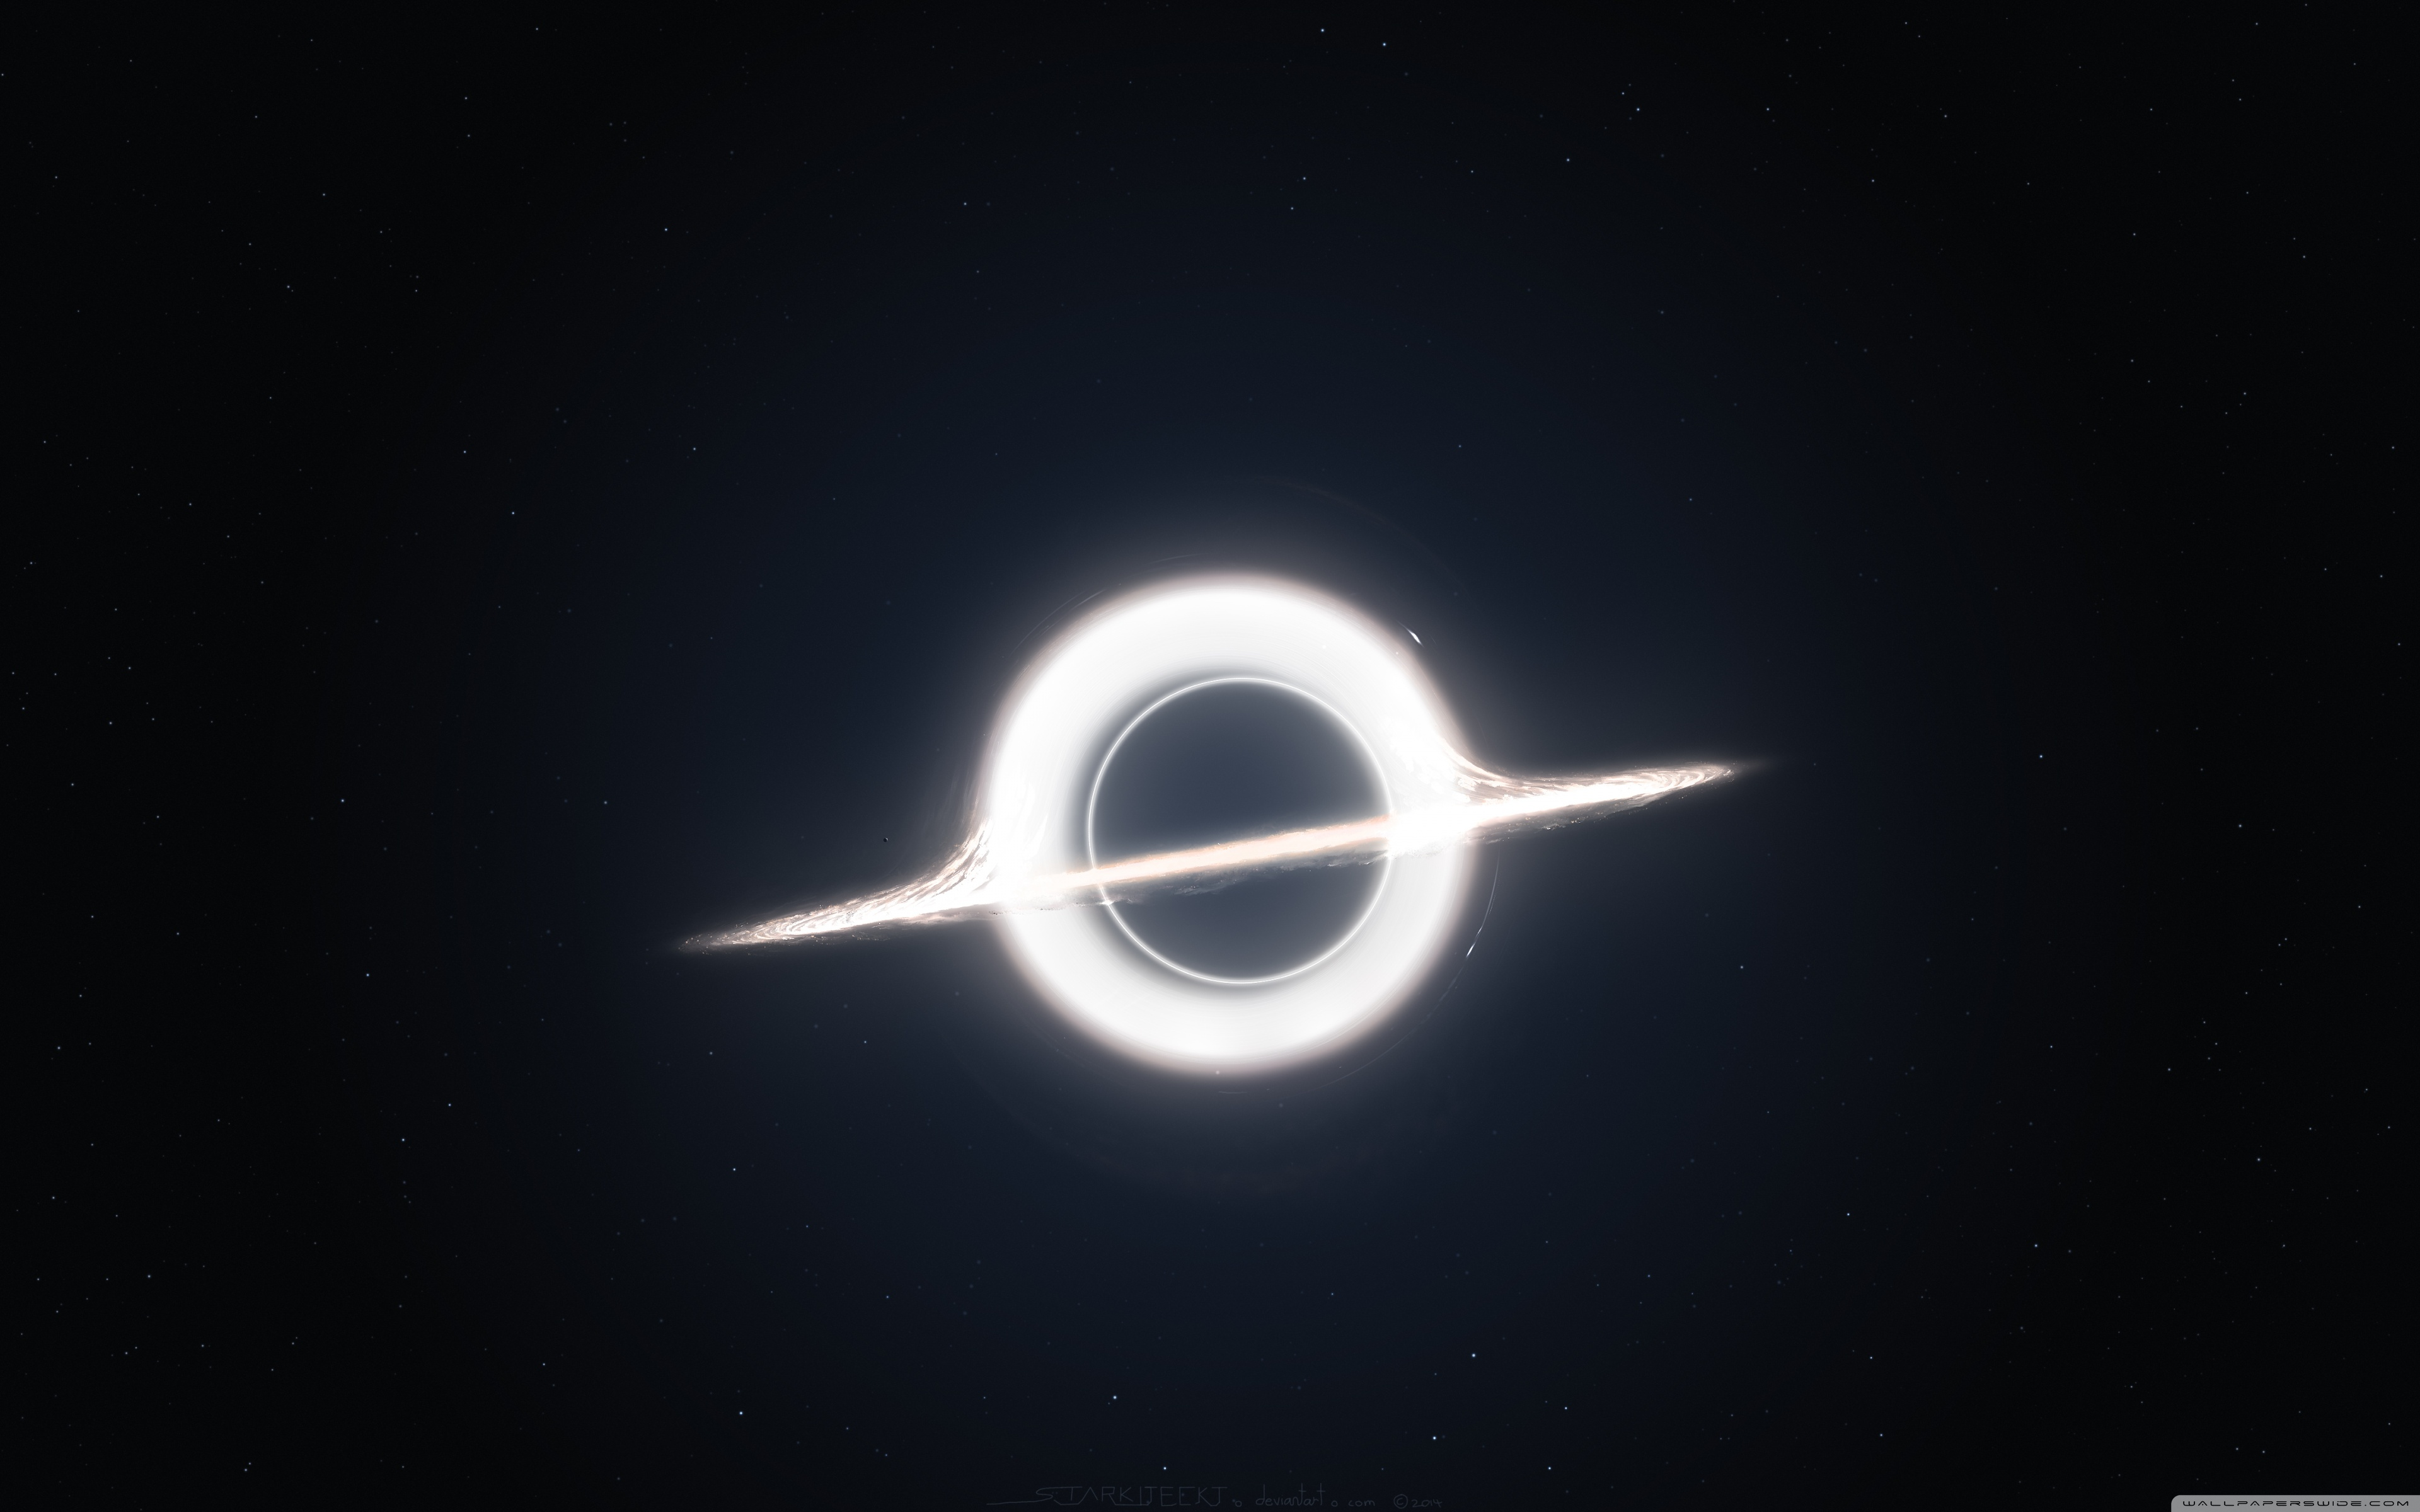 3840x2400 - Black Hole Wallpapers 13